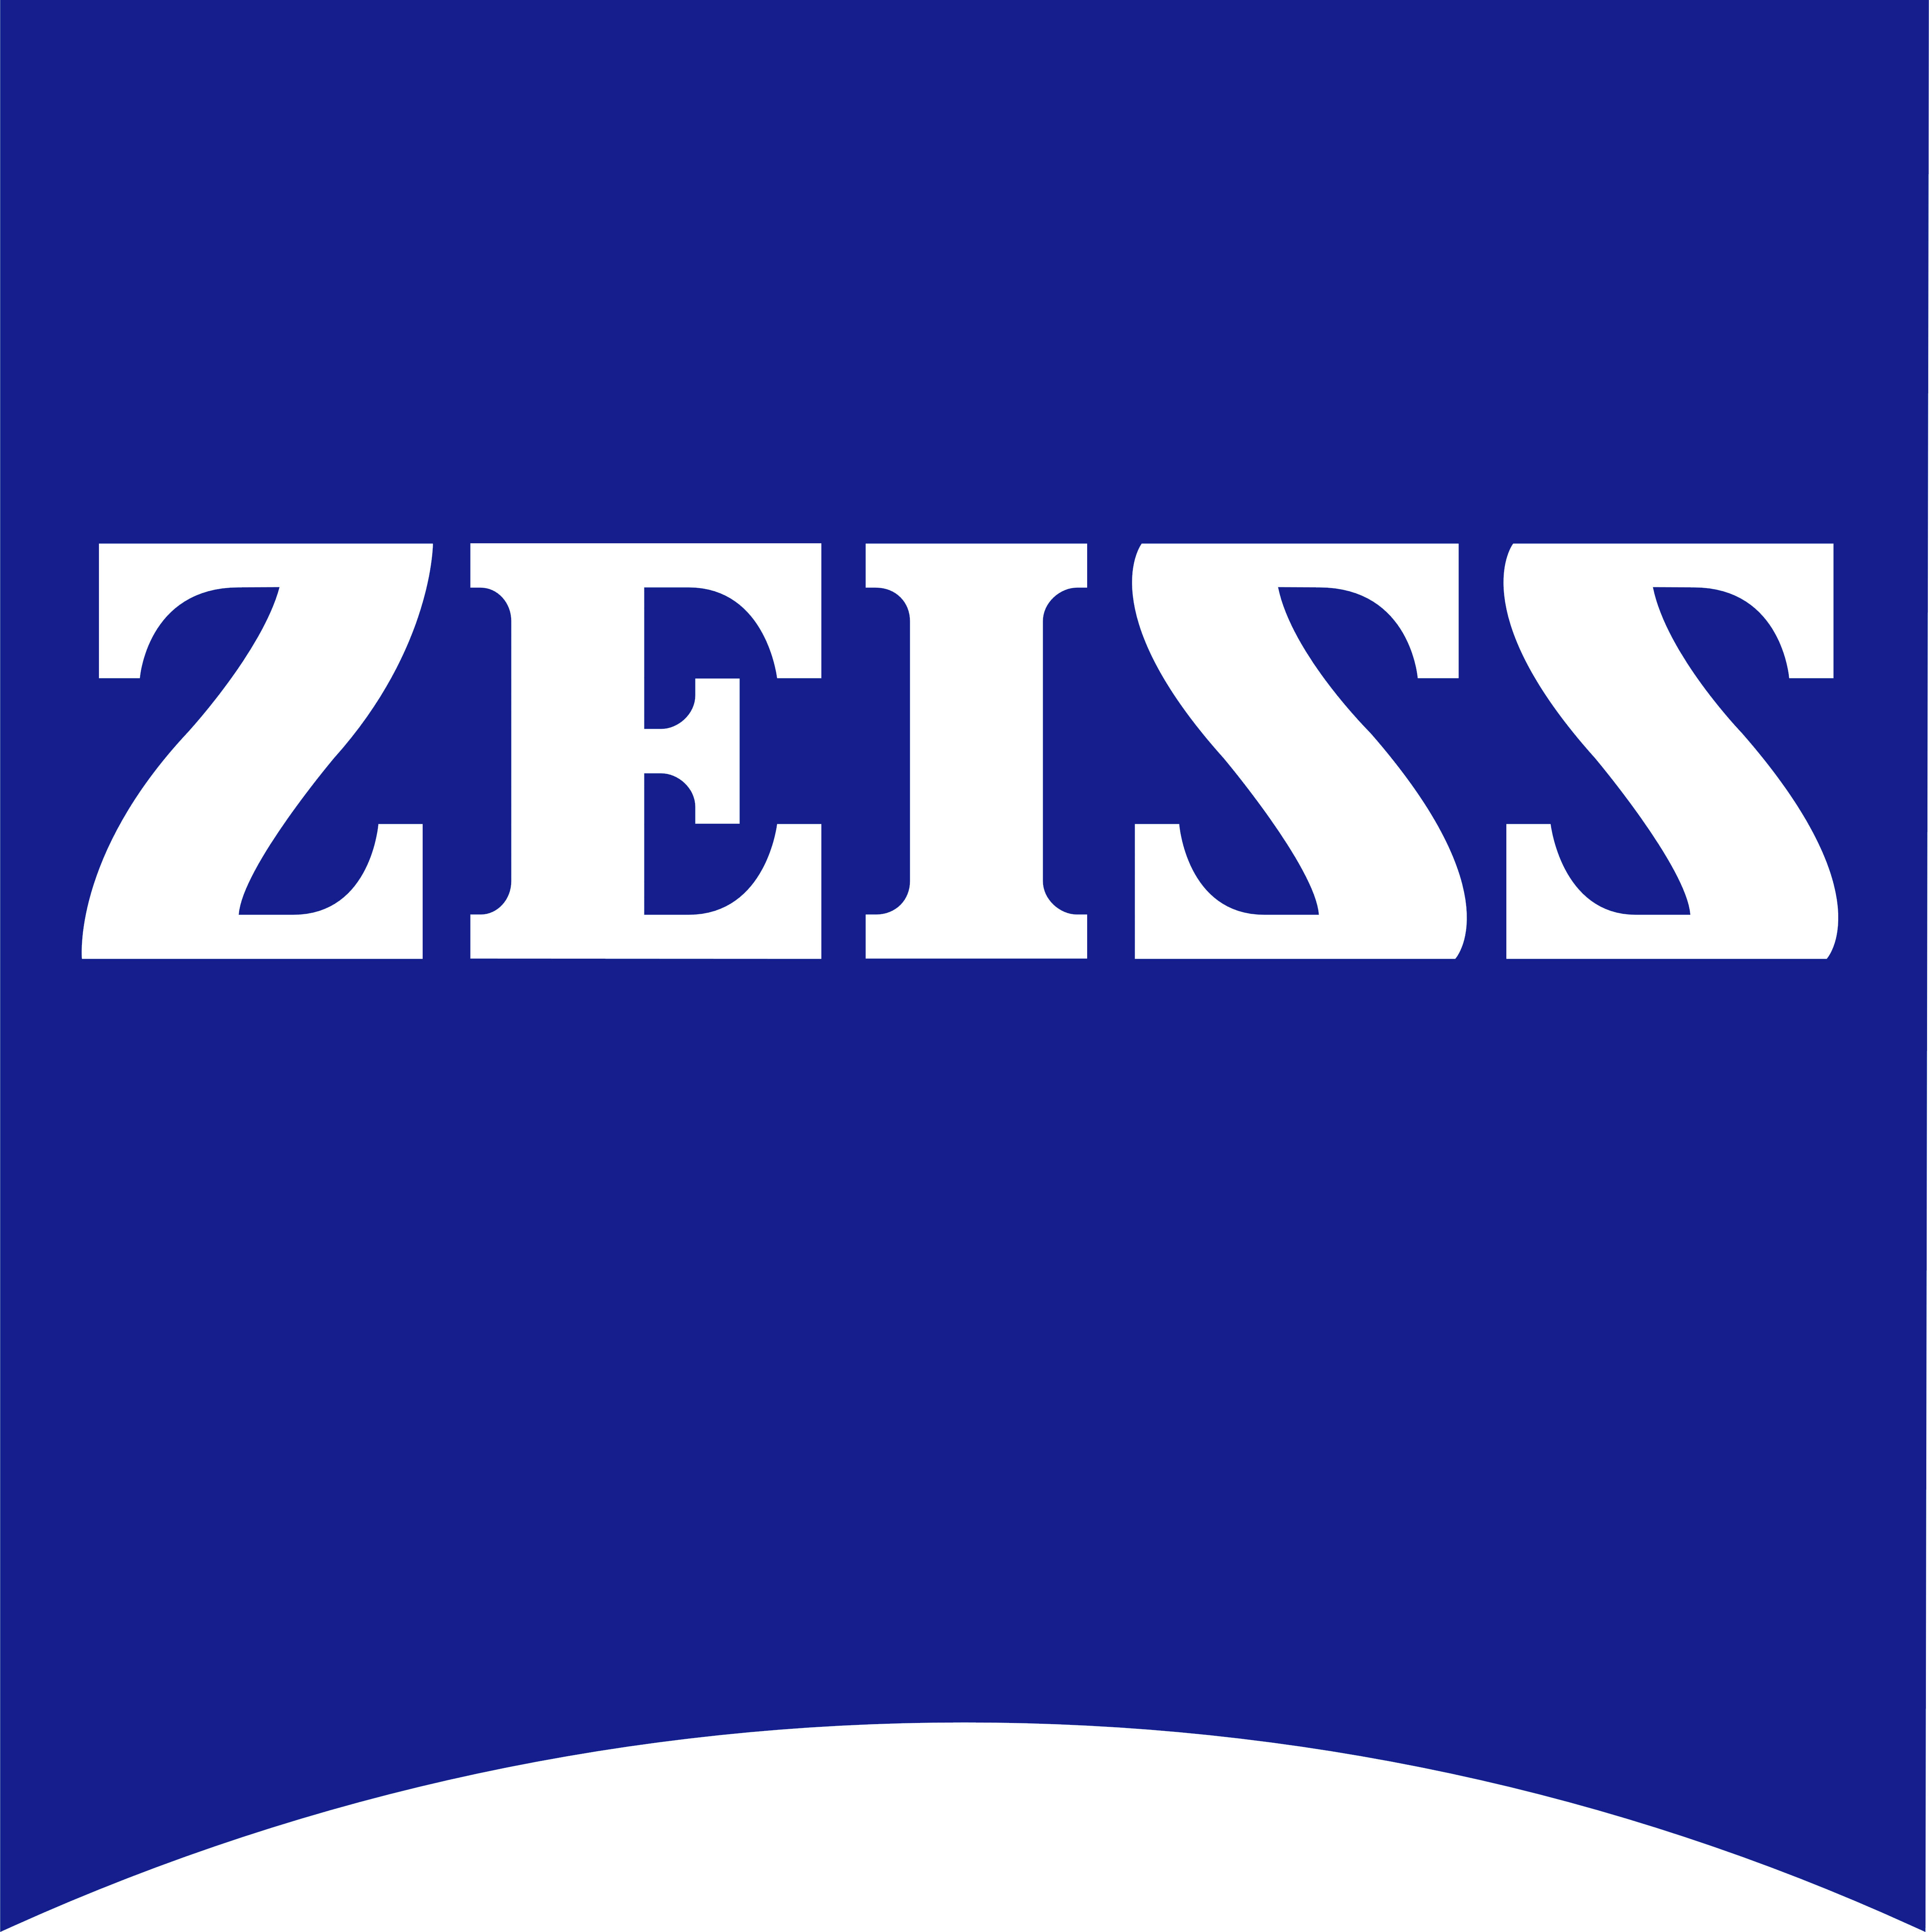 Carl Zeiss PNG